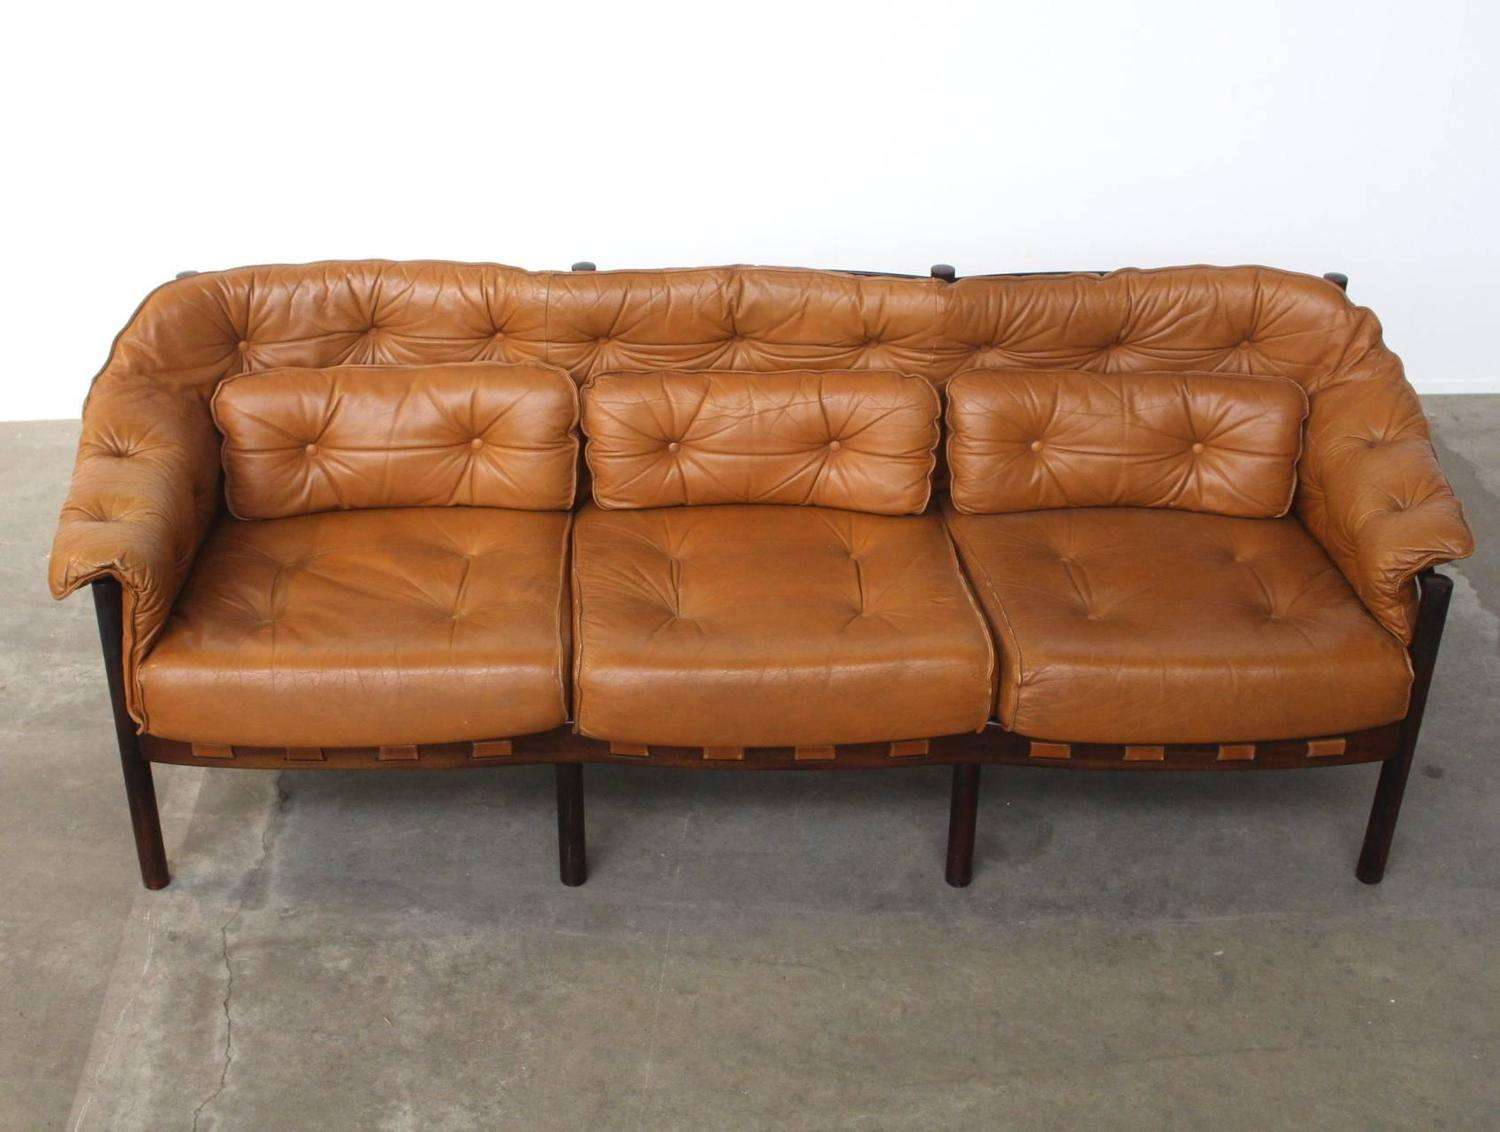 Tufted Leather Camel Colored Three Seat Arne Norell Sofa Stdibs